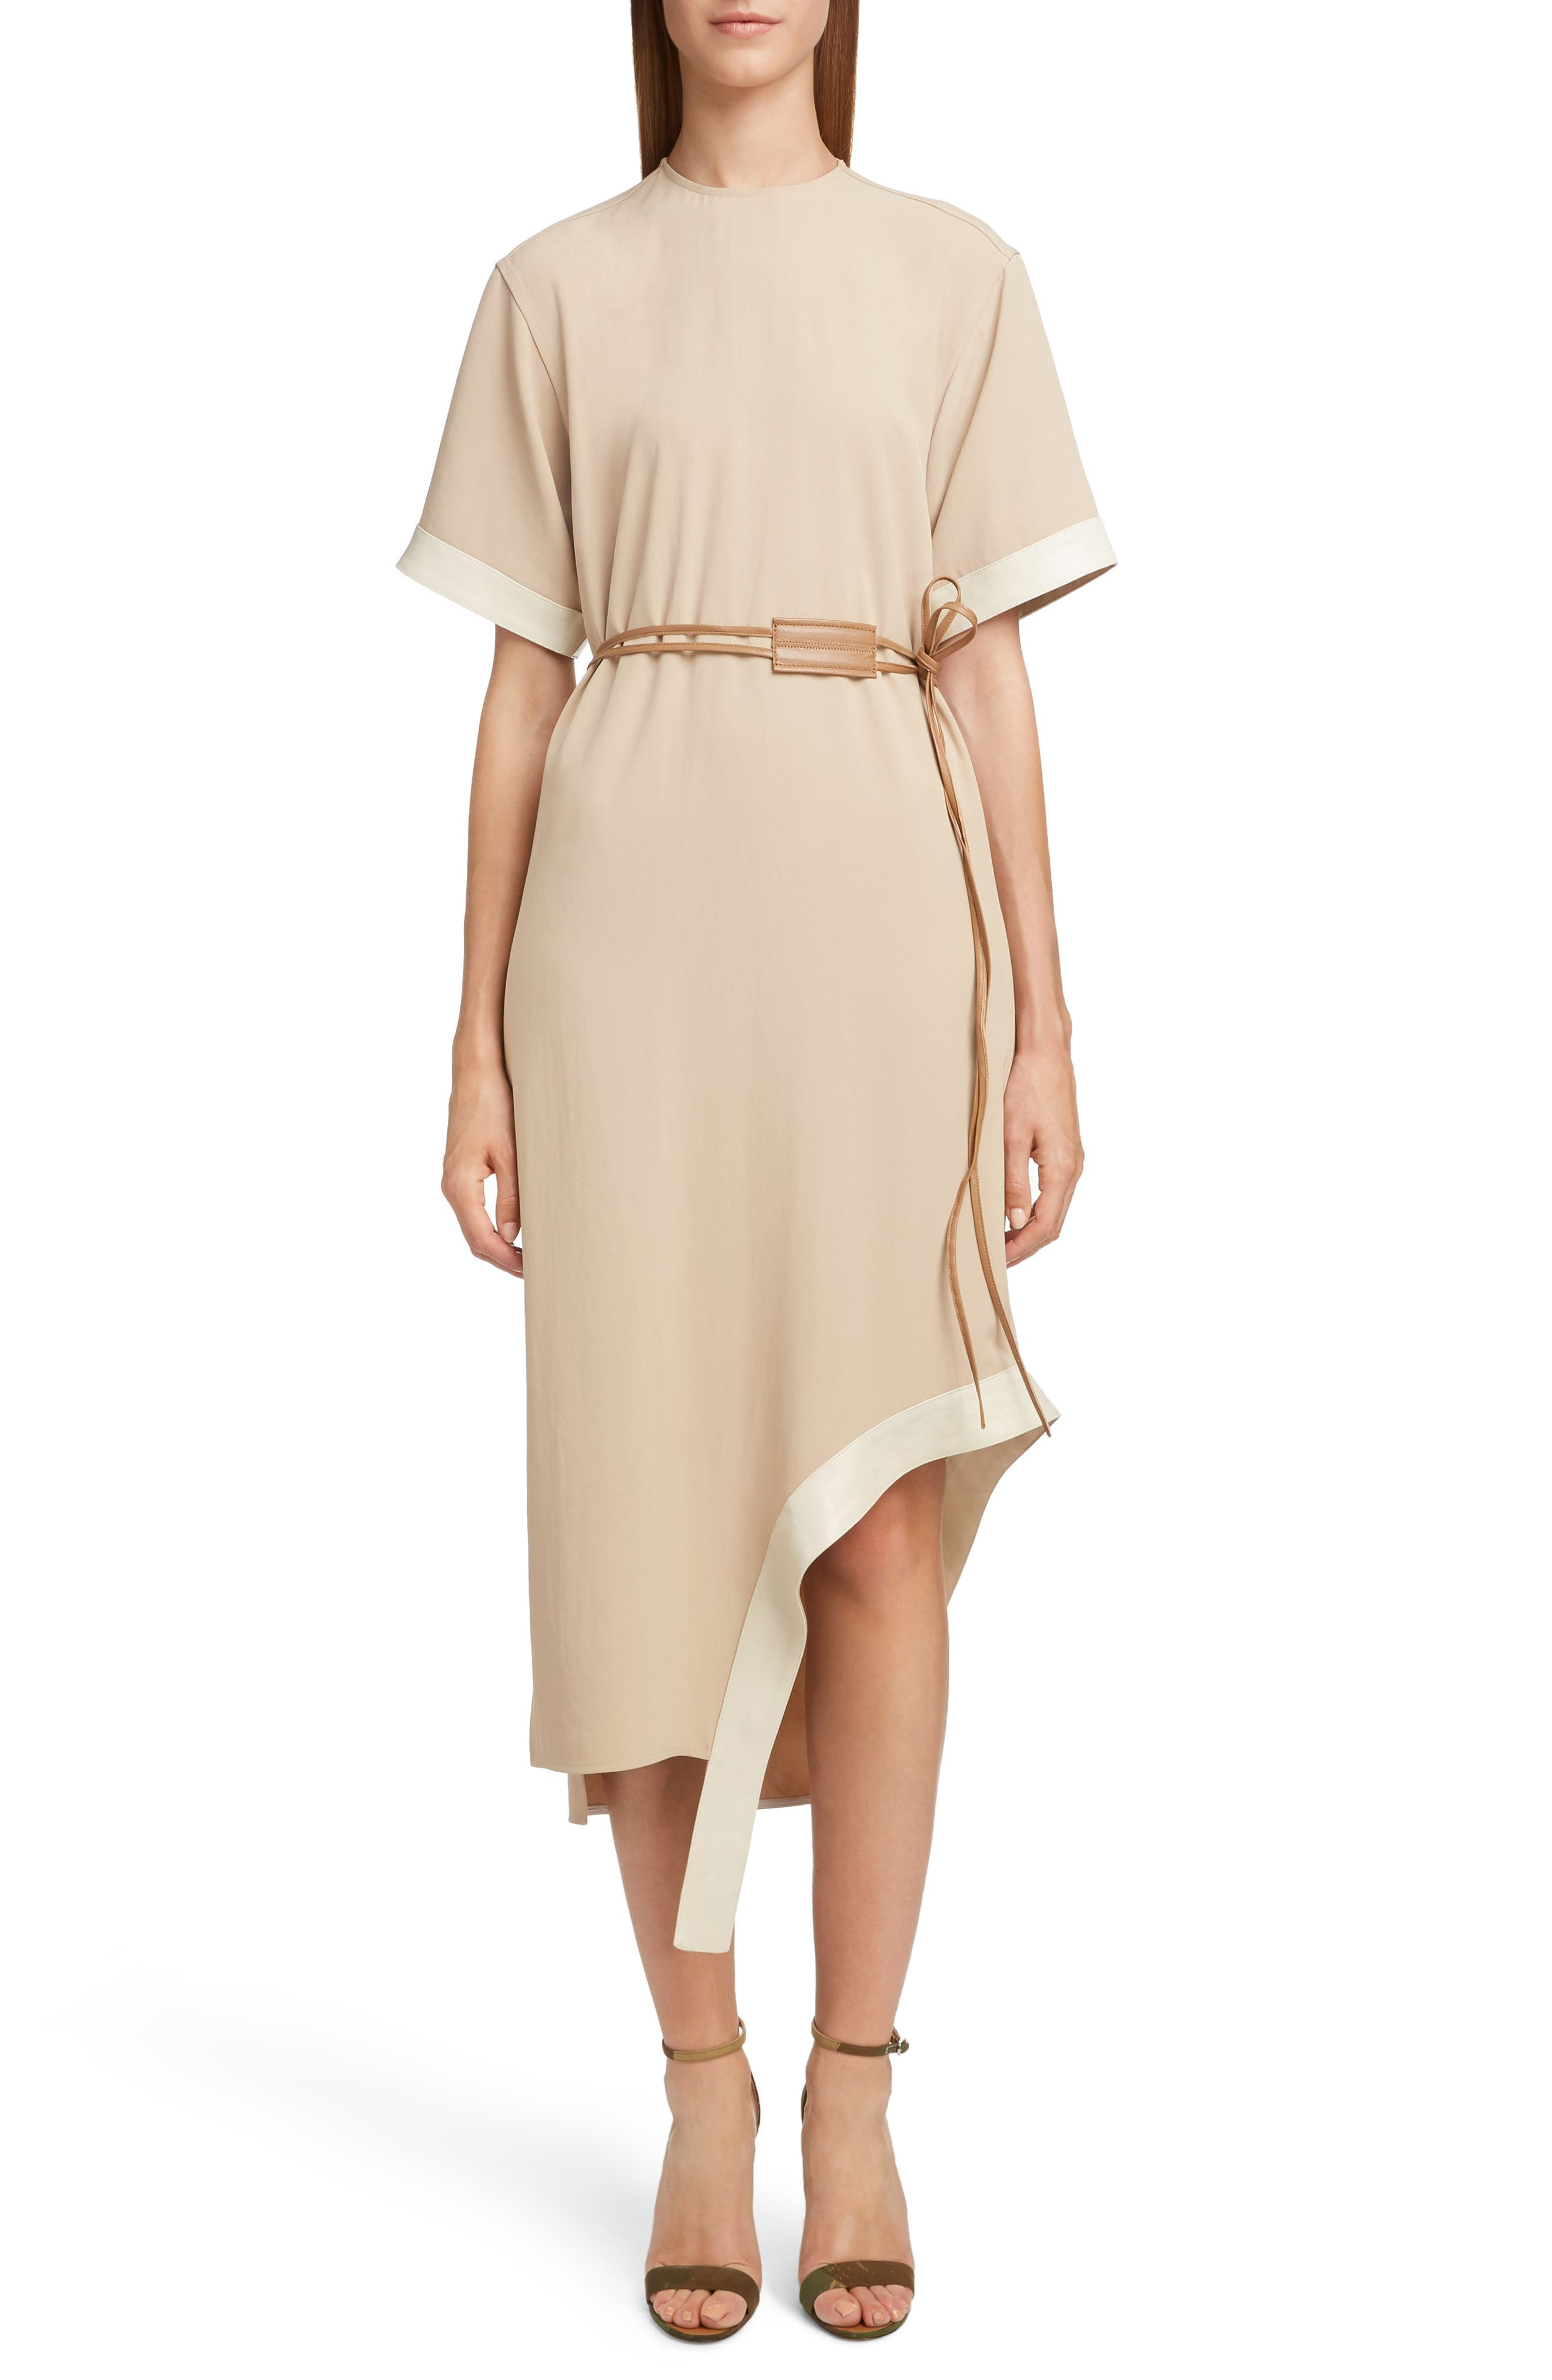 VICTORIA BECKHAM, Leather Belt Asymmetrical Dress, Main thumbnail 1, color, BEIGE/ CAMEL